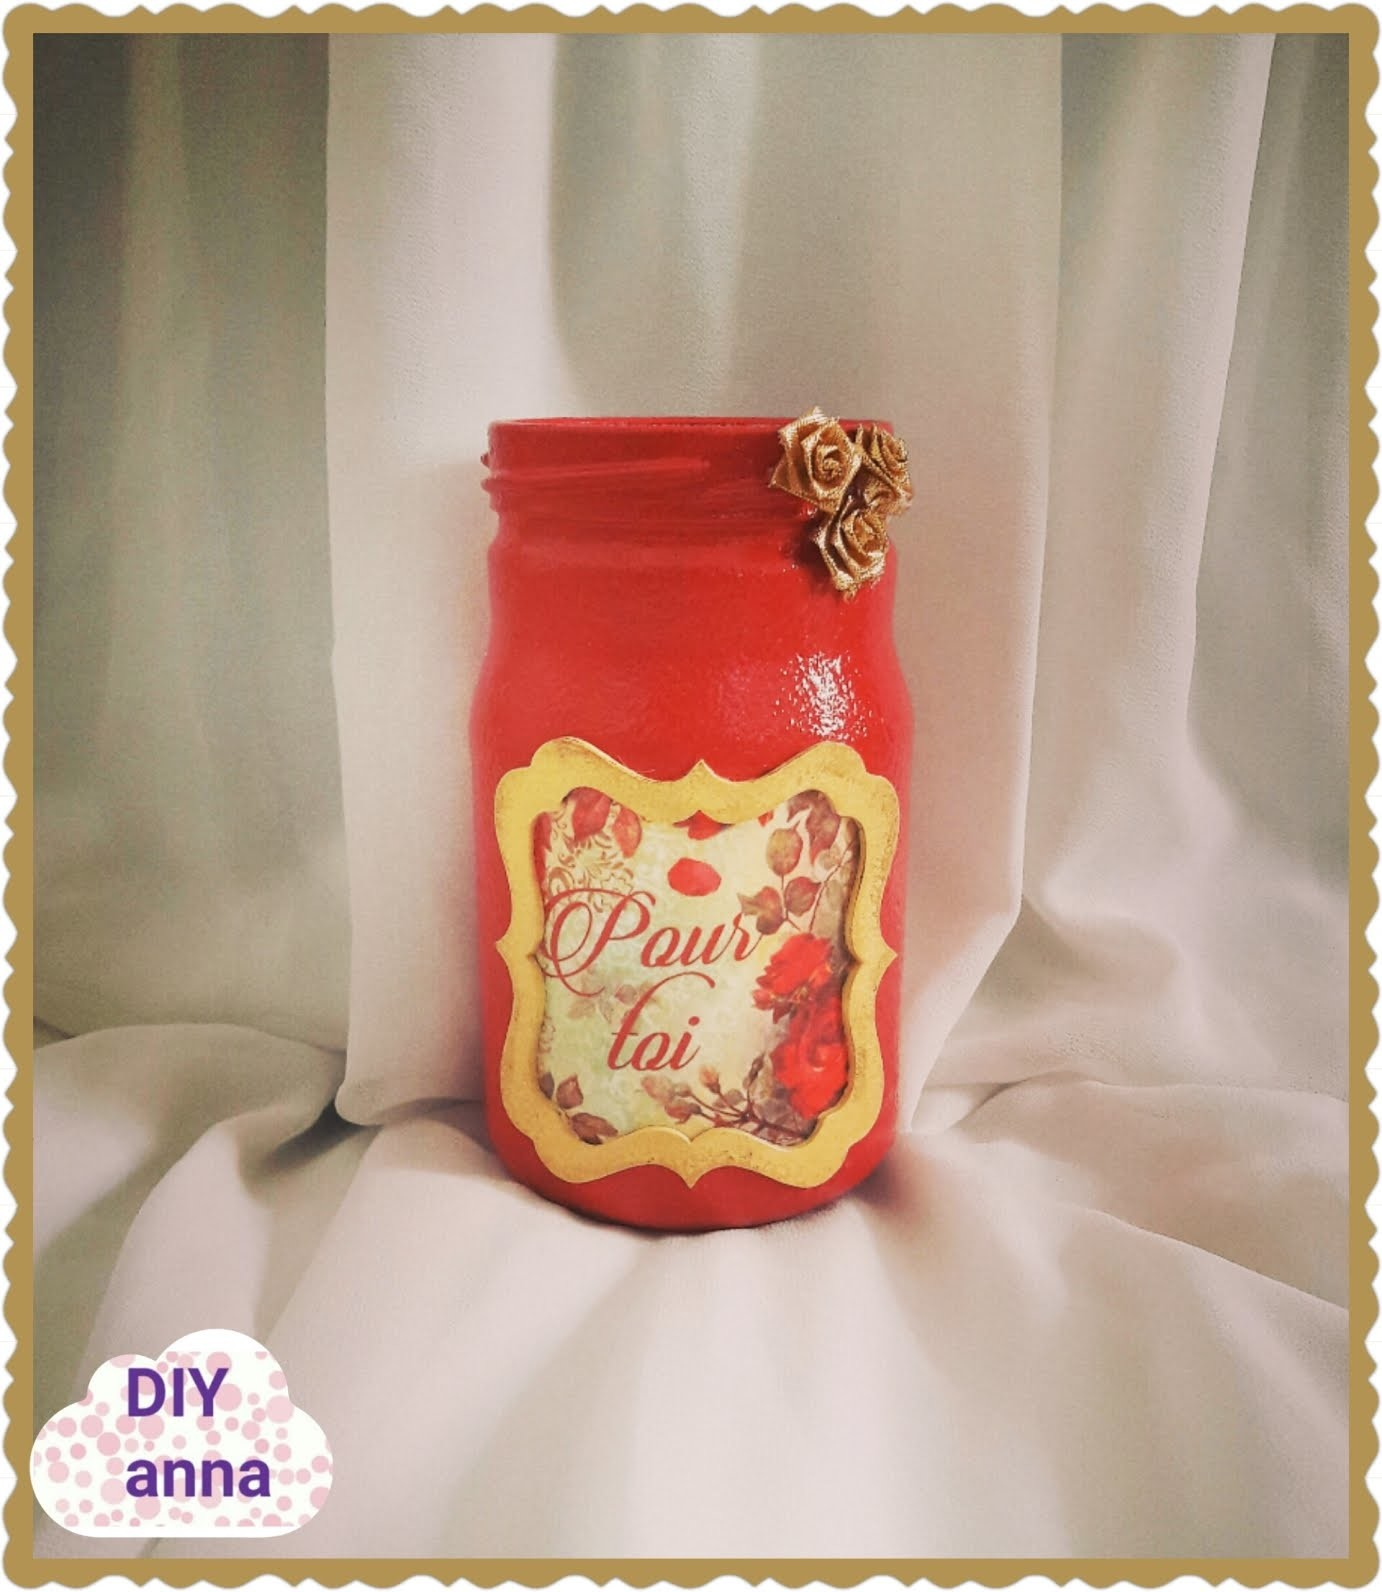 Decoupage shabby chic jar DIY ideas decorations craft tutorial. URADI SAM